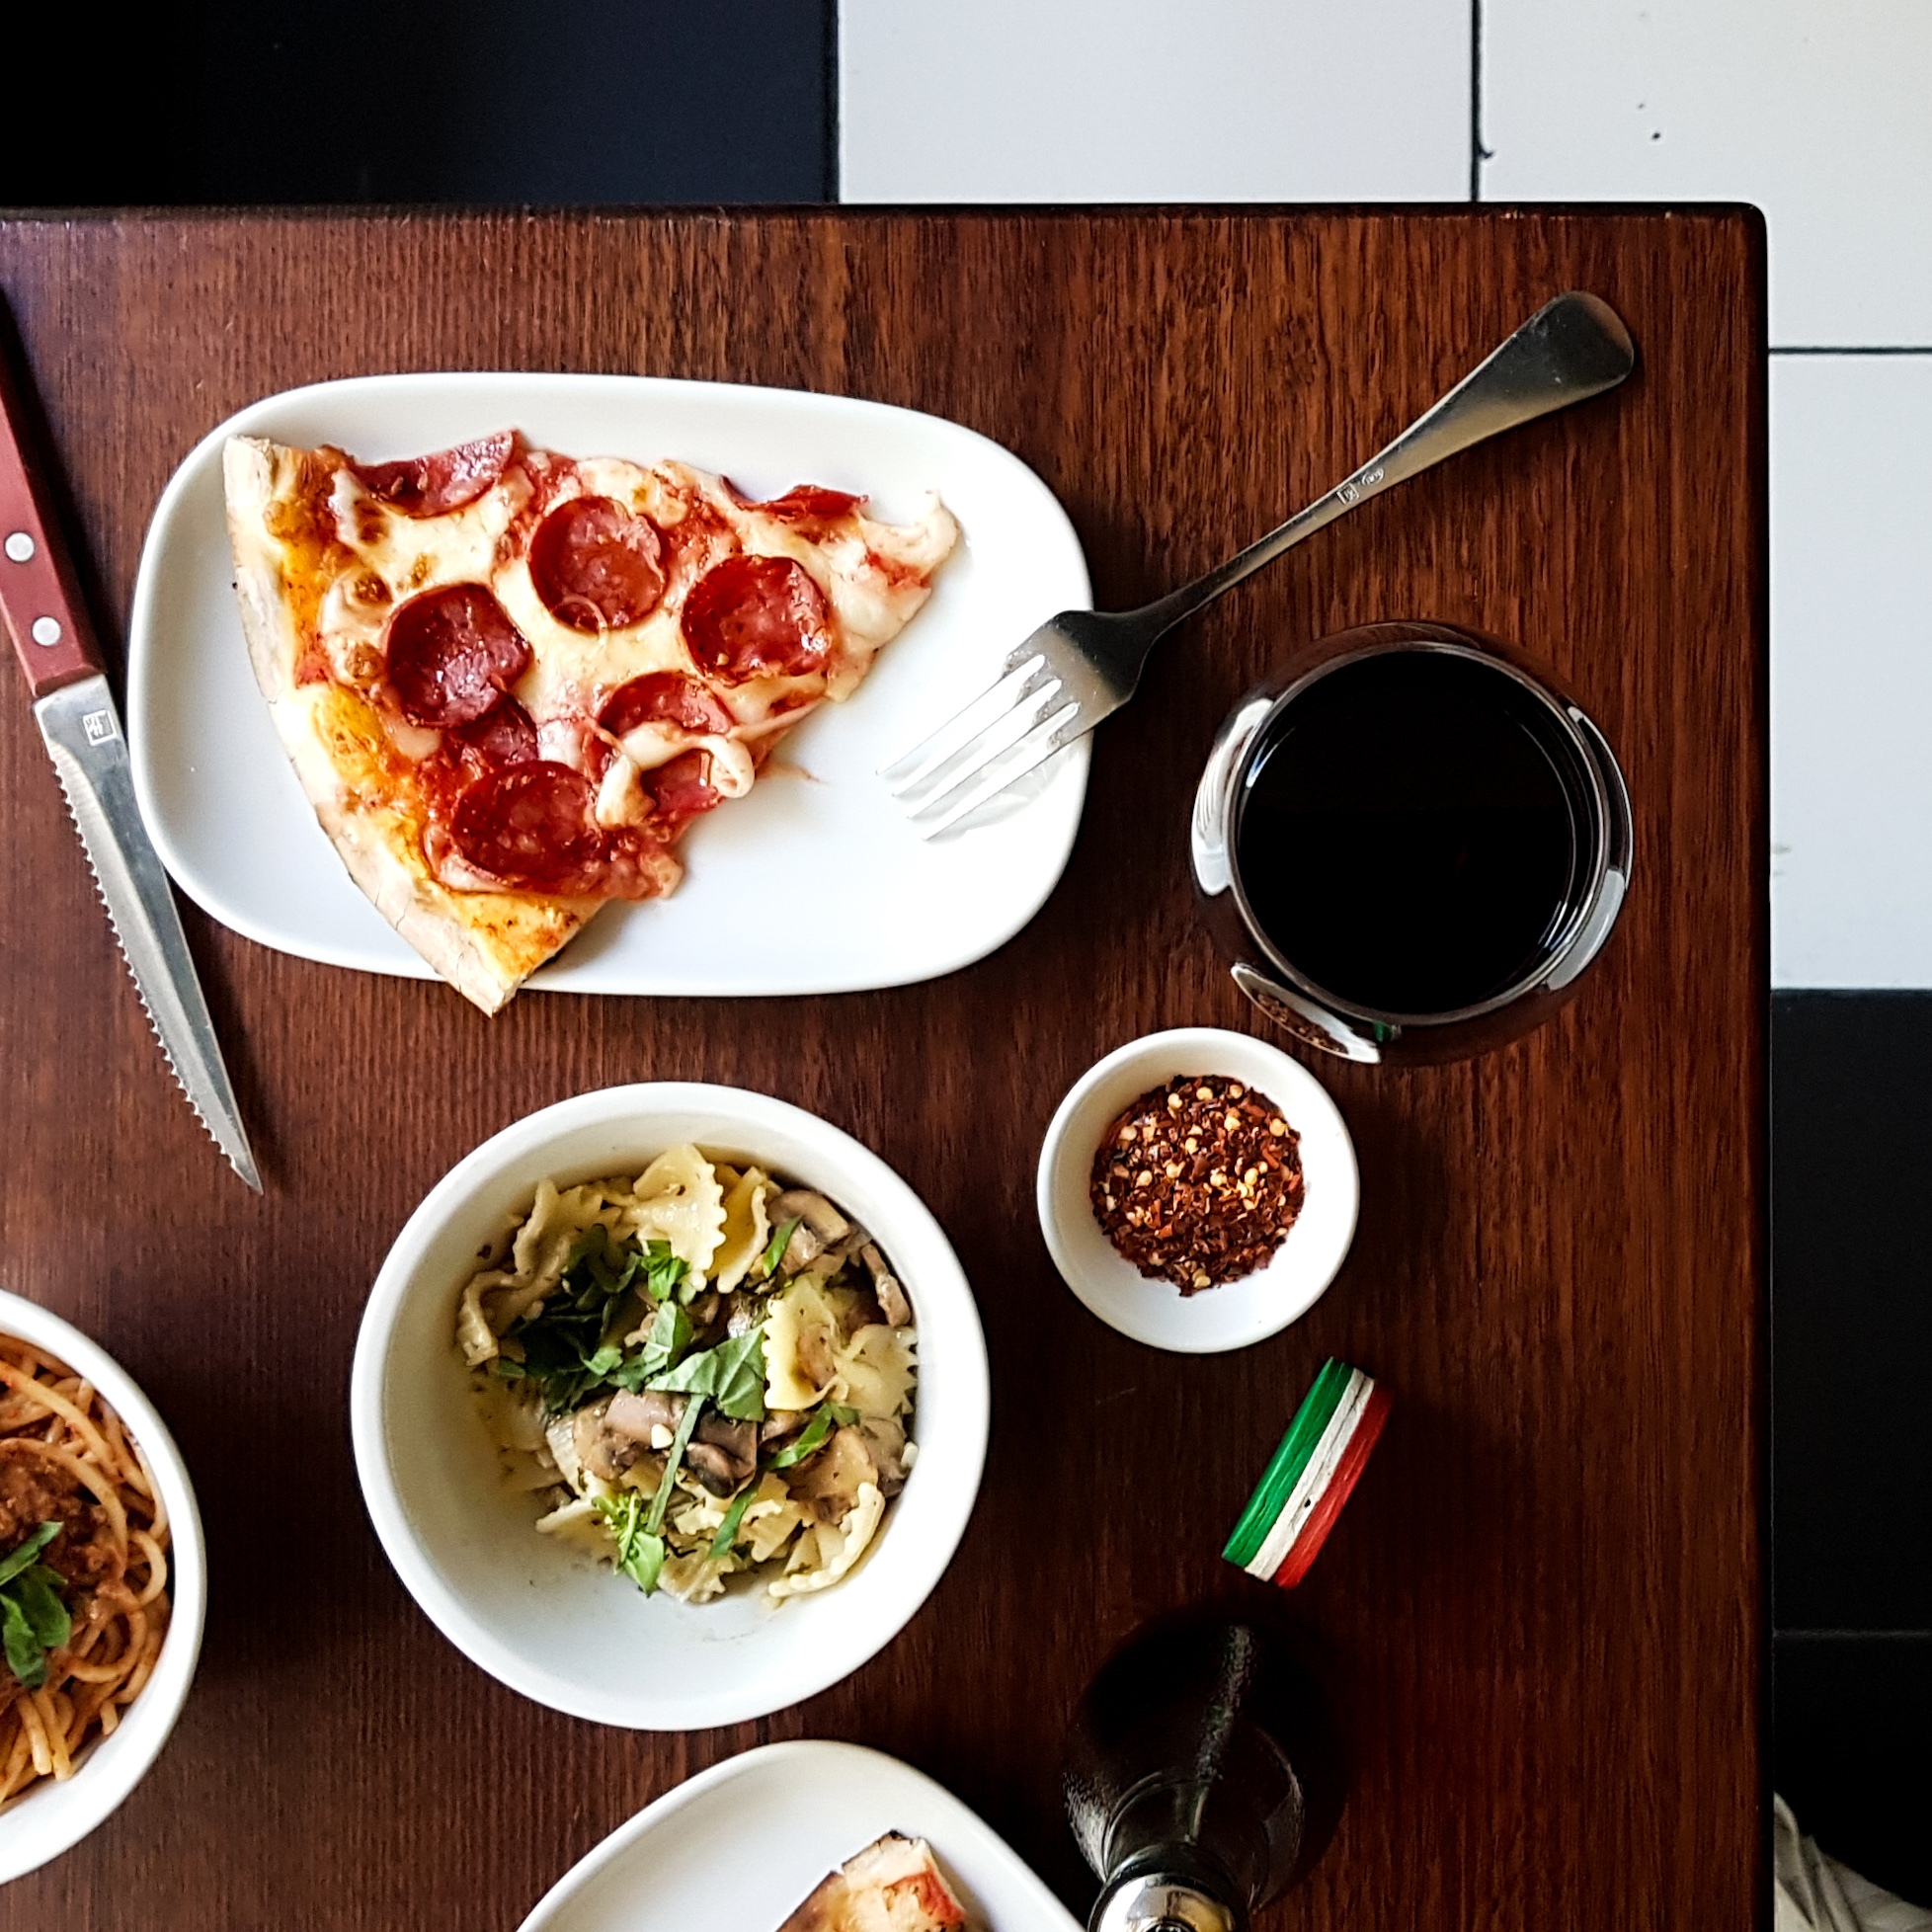 "Broadsheet July 2019 - First came unlimited pizza and pasta, now bottomless booze is here.""Pizza Autentico is celebrating its fifth anniversary the only way it knows how: with unlimited pizza and pasta and bottomless beer and wine.The unlimited pizza and pasta deal costs $25 per person and is available every day; the bottomless drinks option is $50 per person and available to groups of four or less every day, and to groups of five or more Monday to Thursday…"""